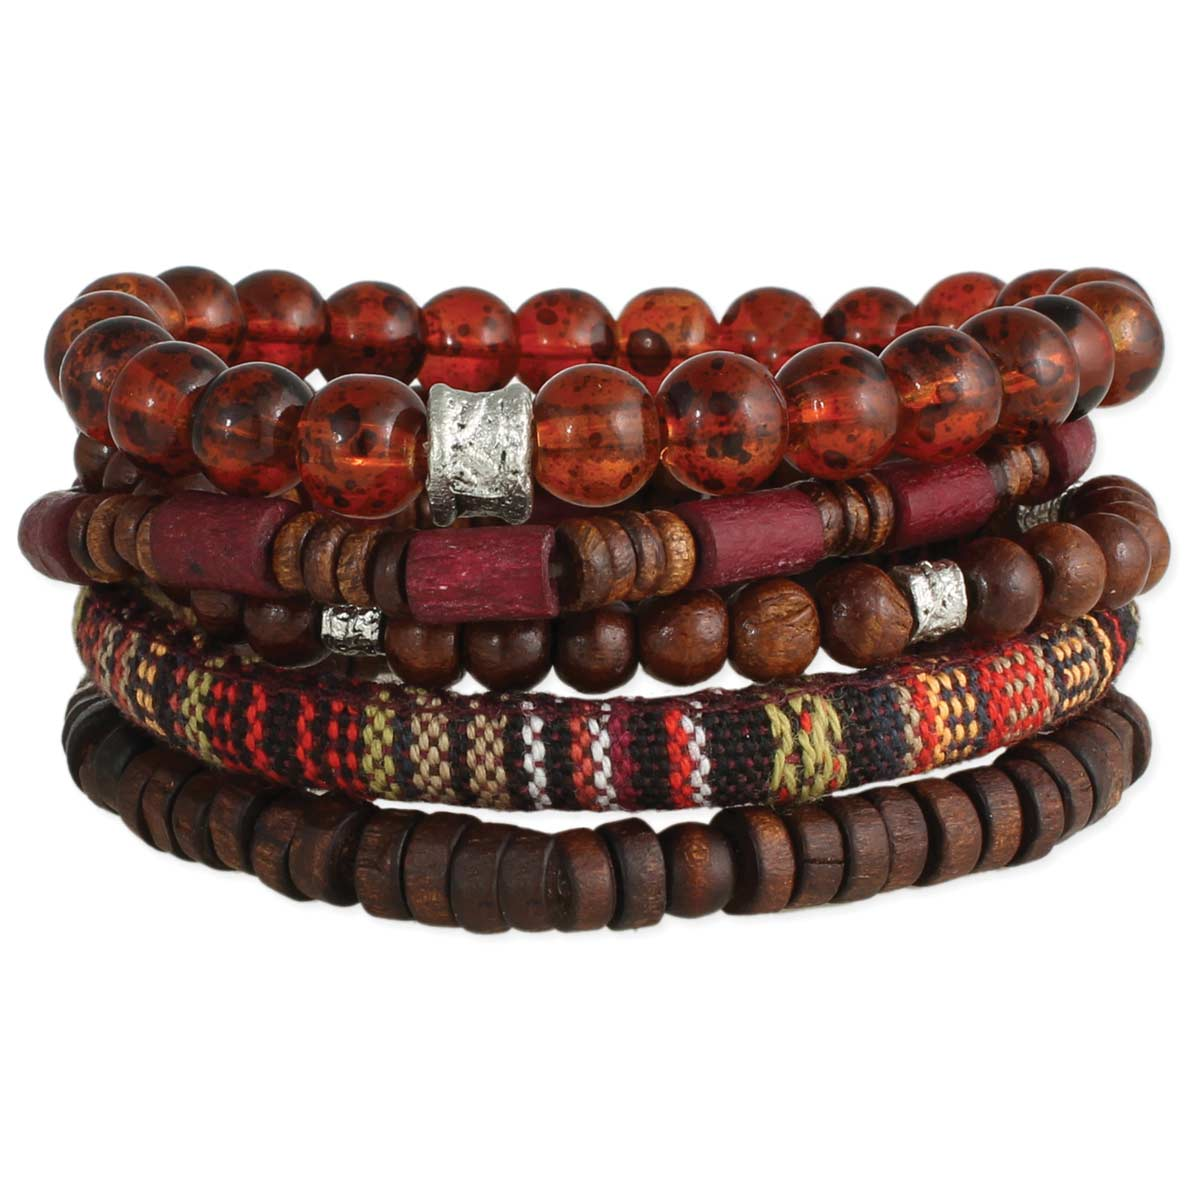 Set of 5 Wood & Glass Bead Men's Bracelets